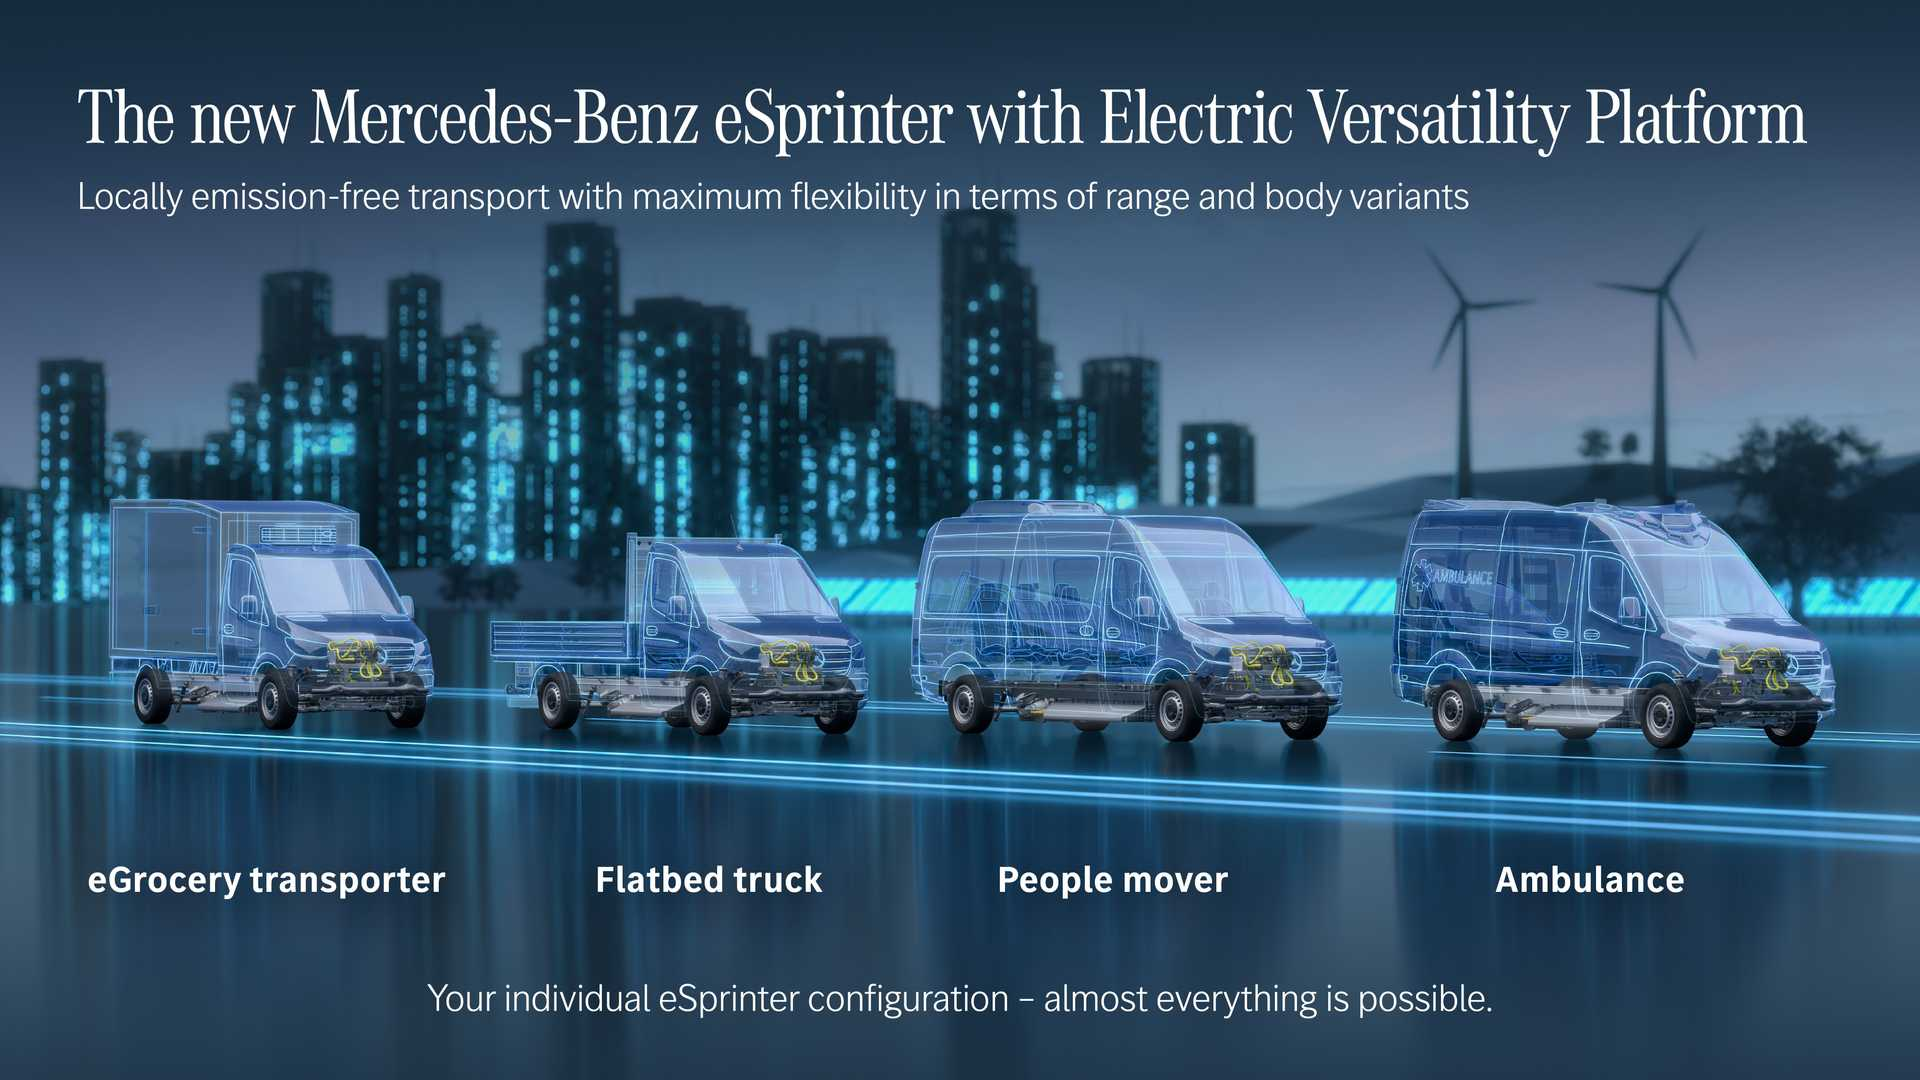 Mercedes Benz Esprinter New Gen Configurations